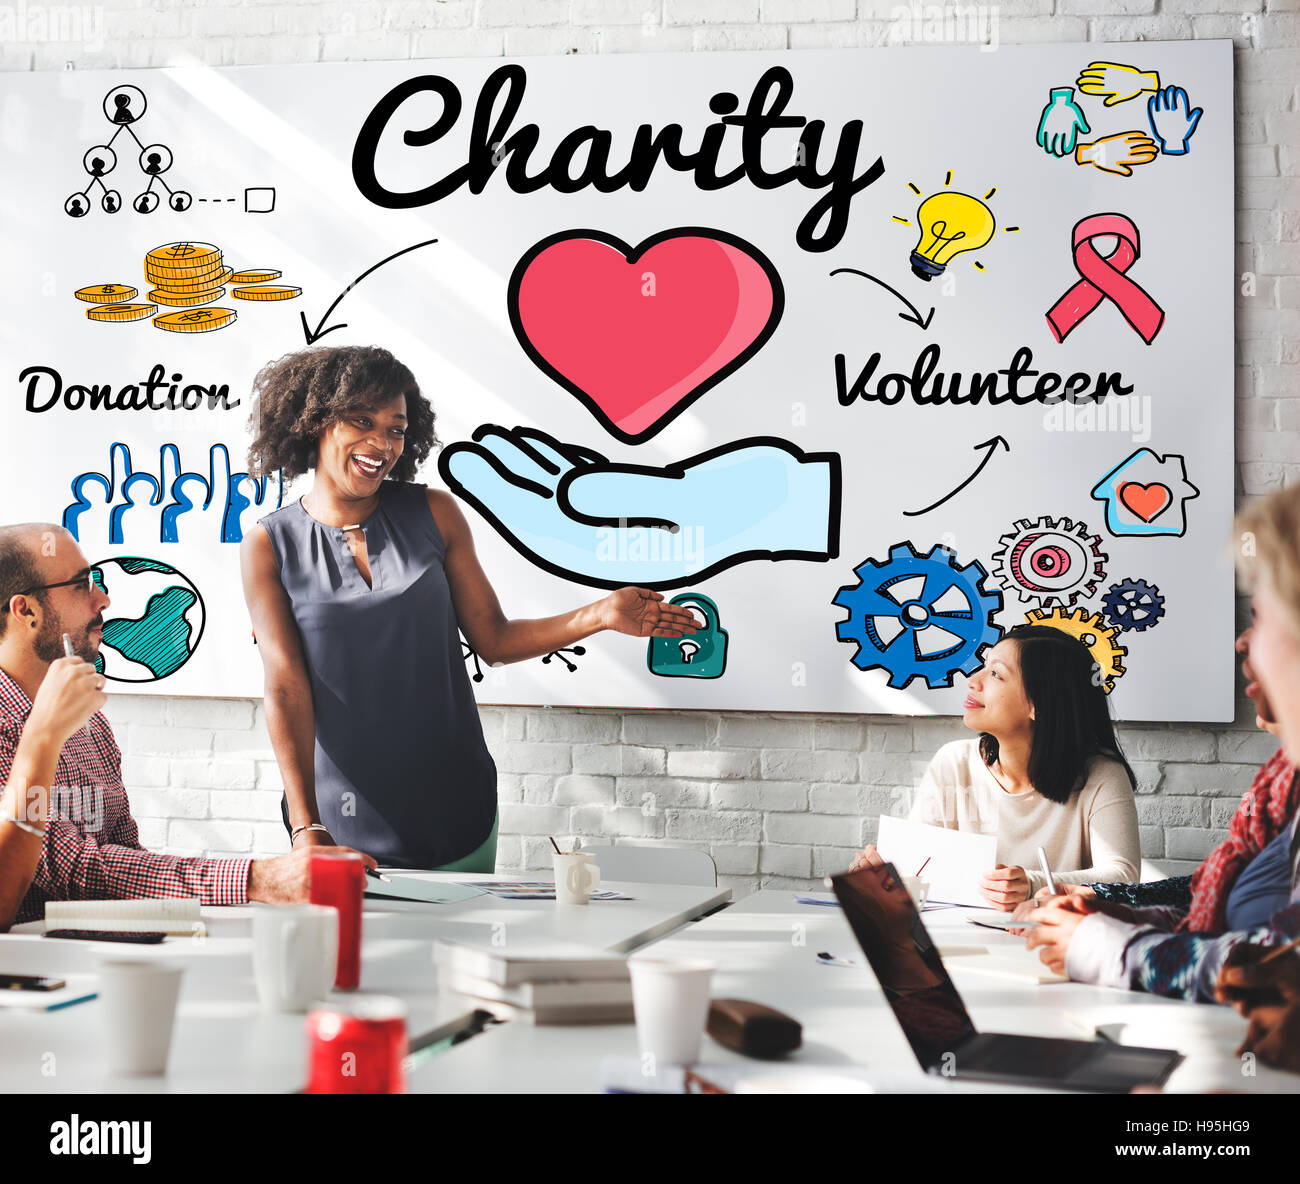 Charity Donate Welfare Generosity Charitable Giving Concept - Stock Image